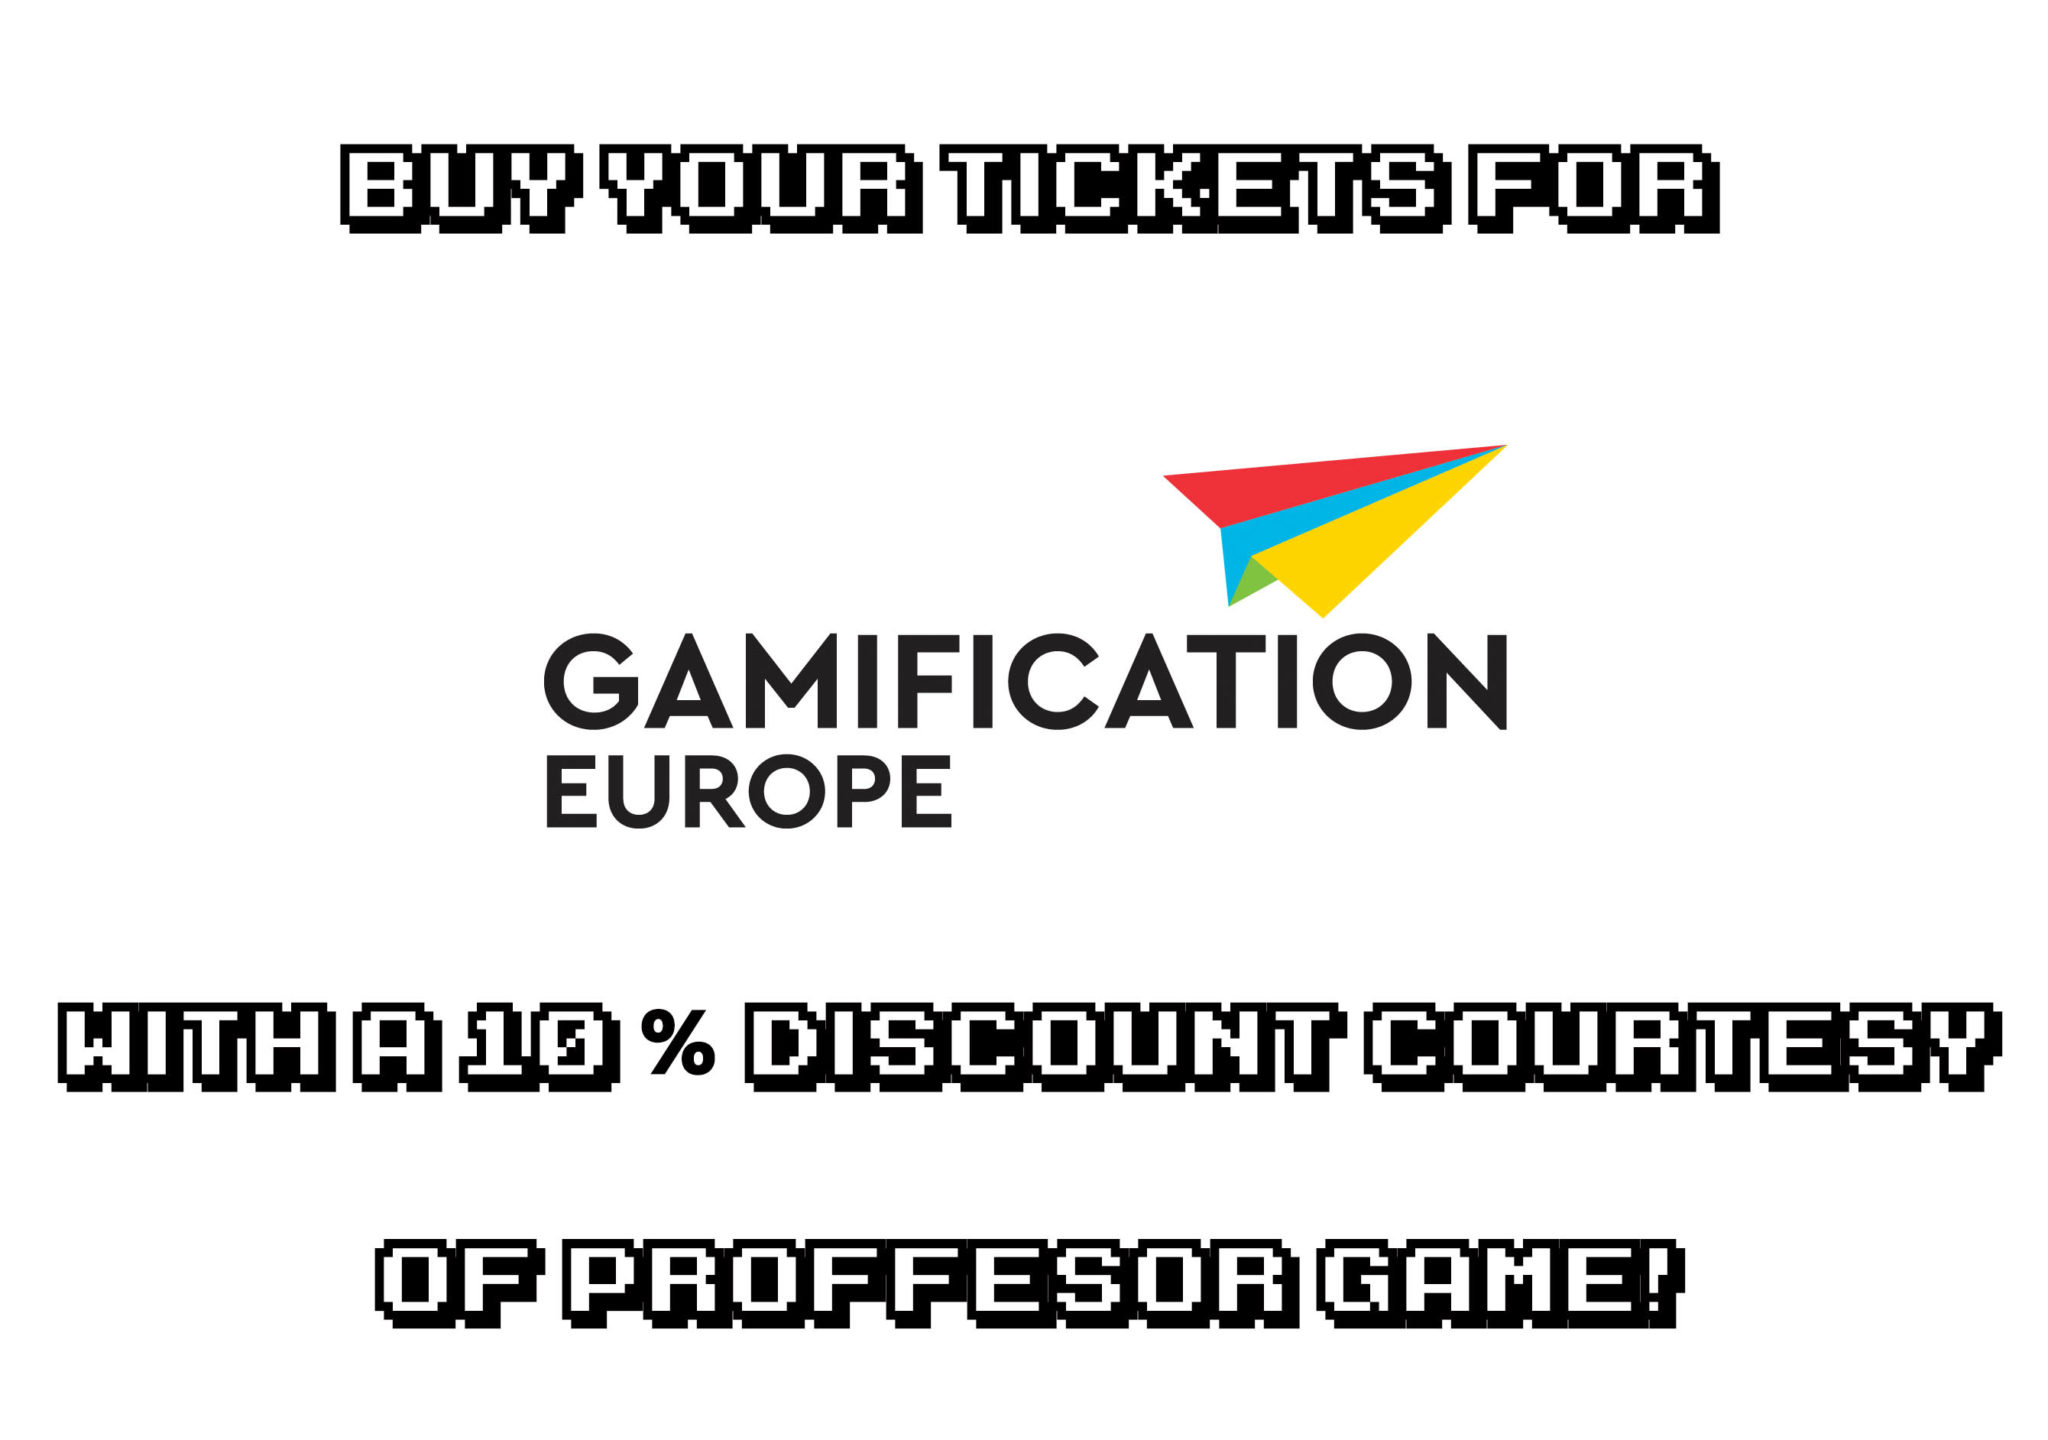 Come to Gamification Europe 2018 with a discount